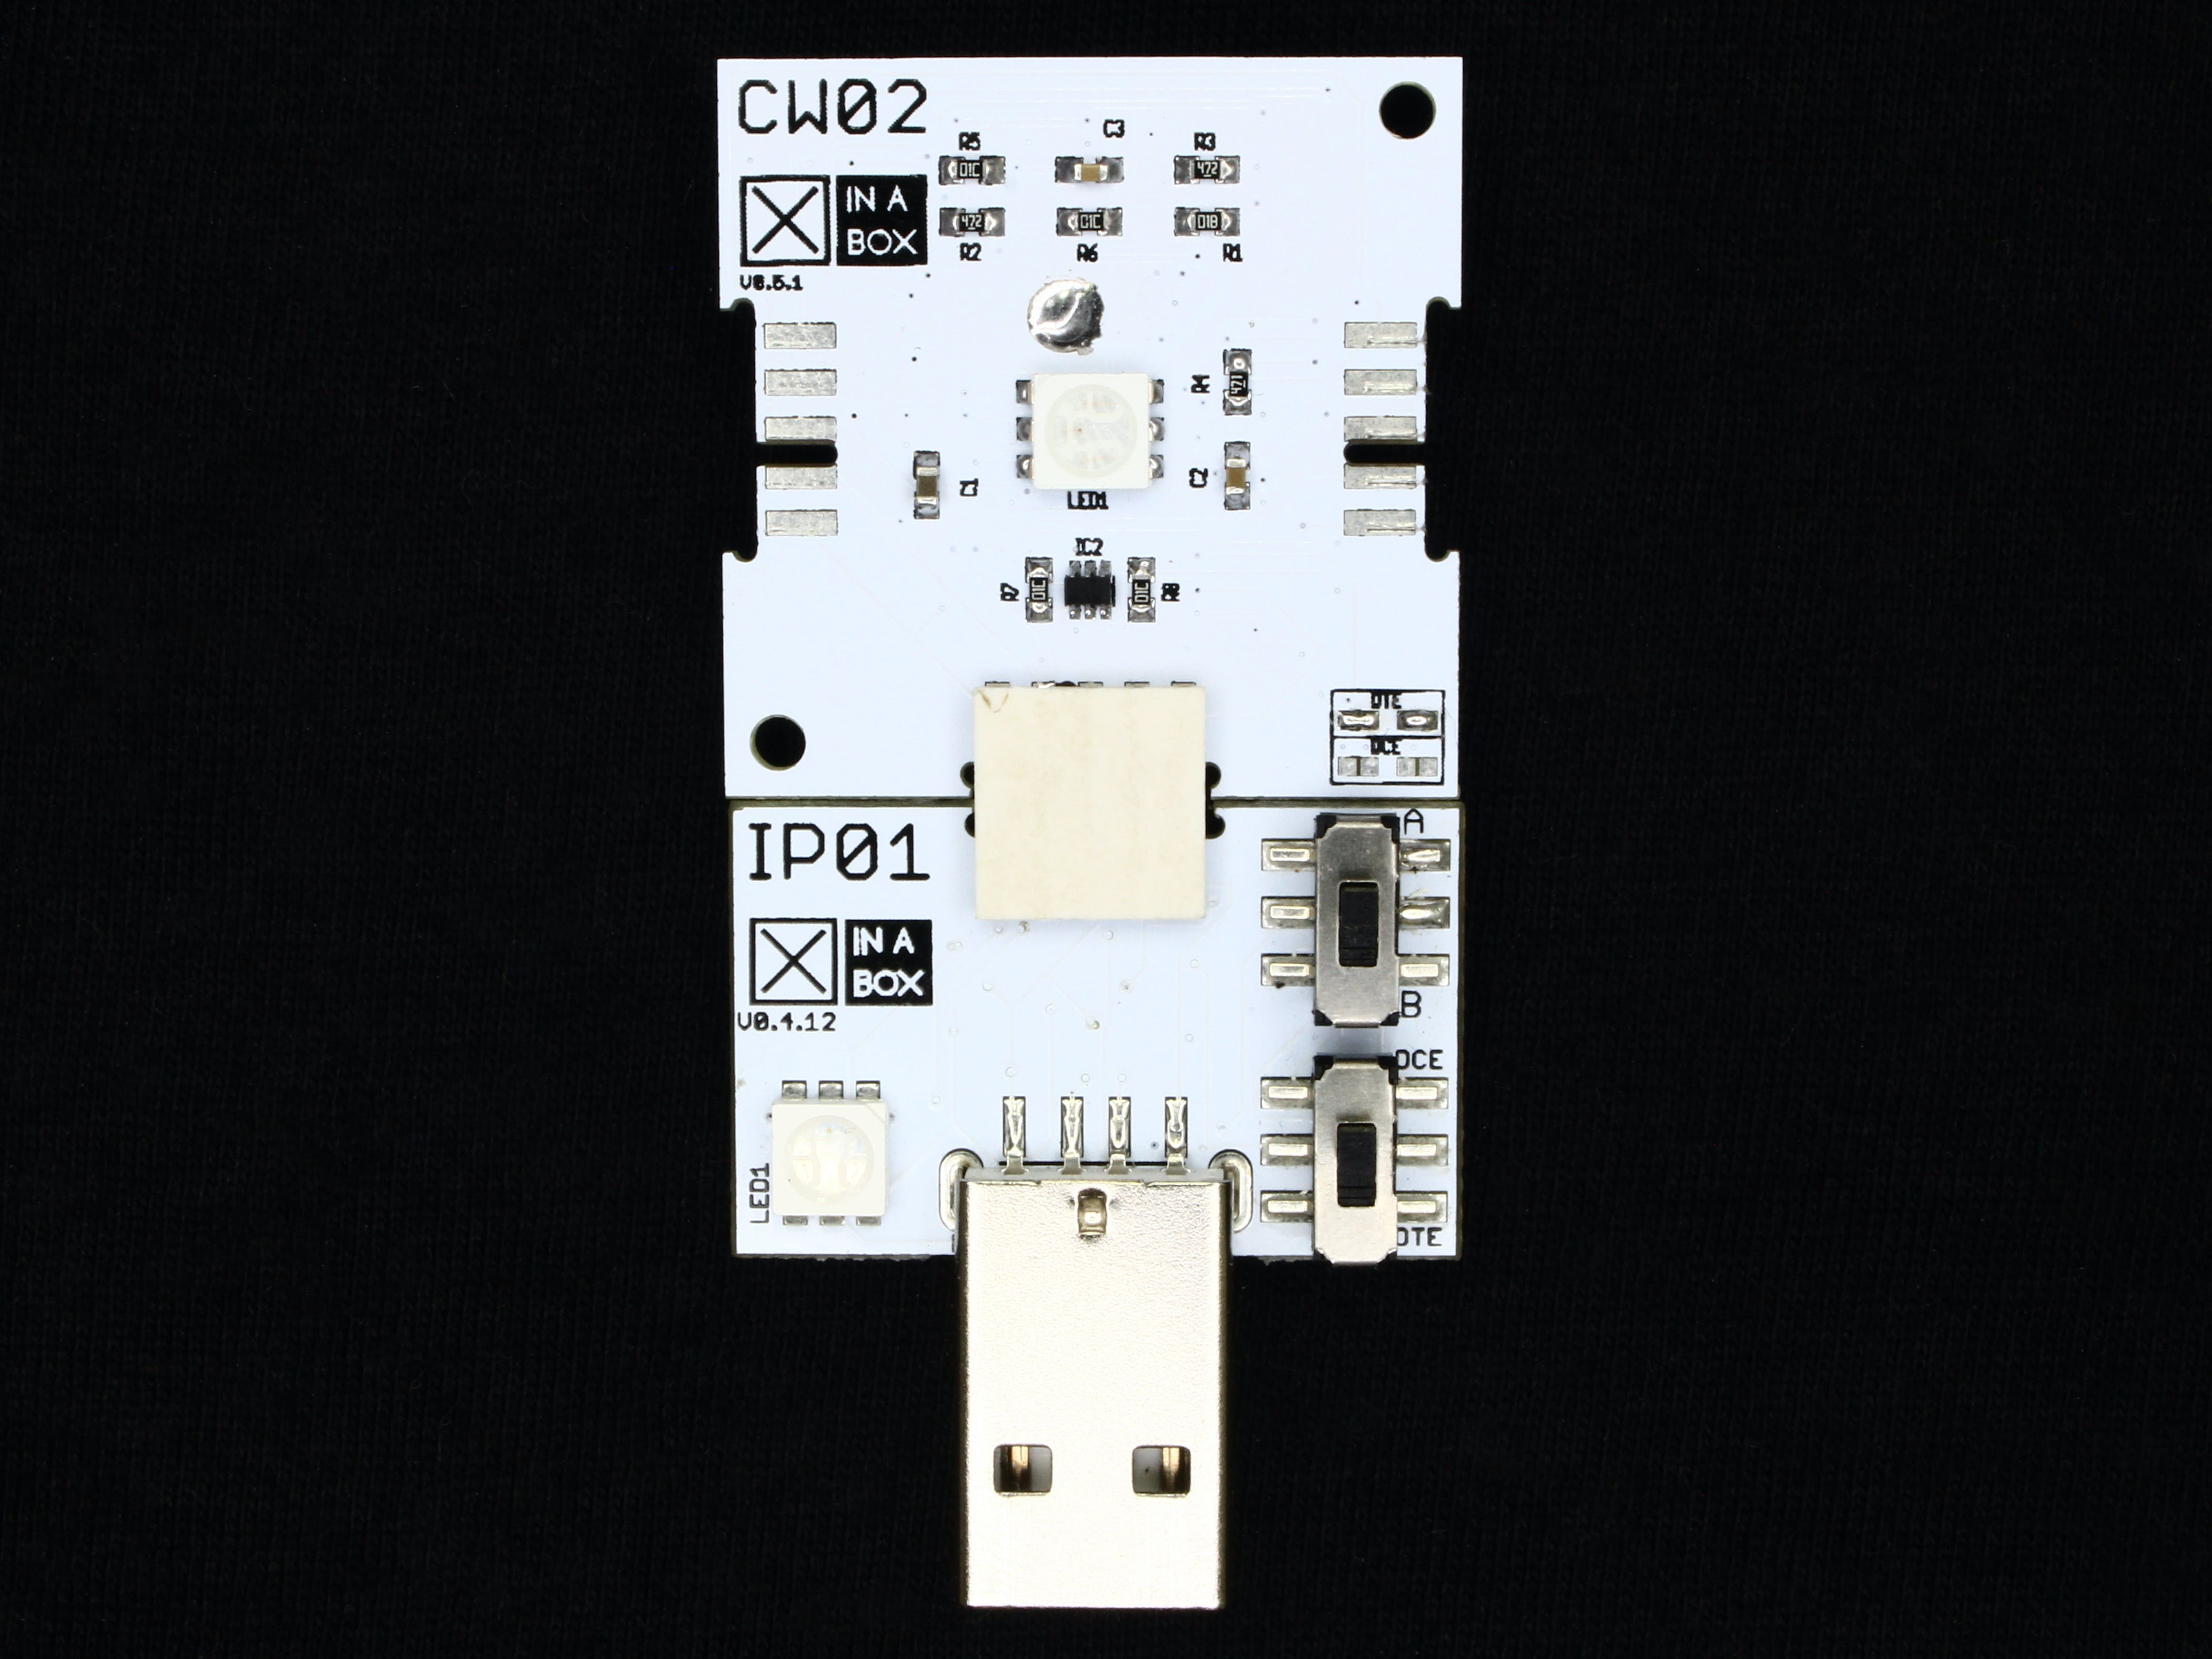 CW02 and IP01 connected together for programming over USB.